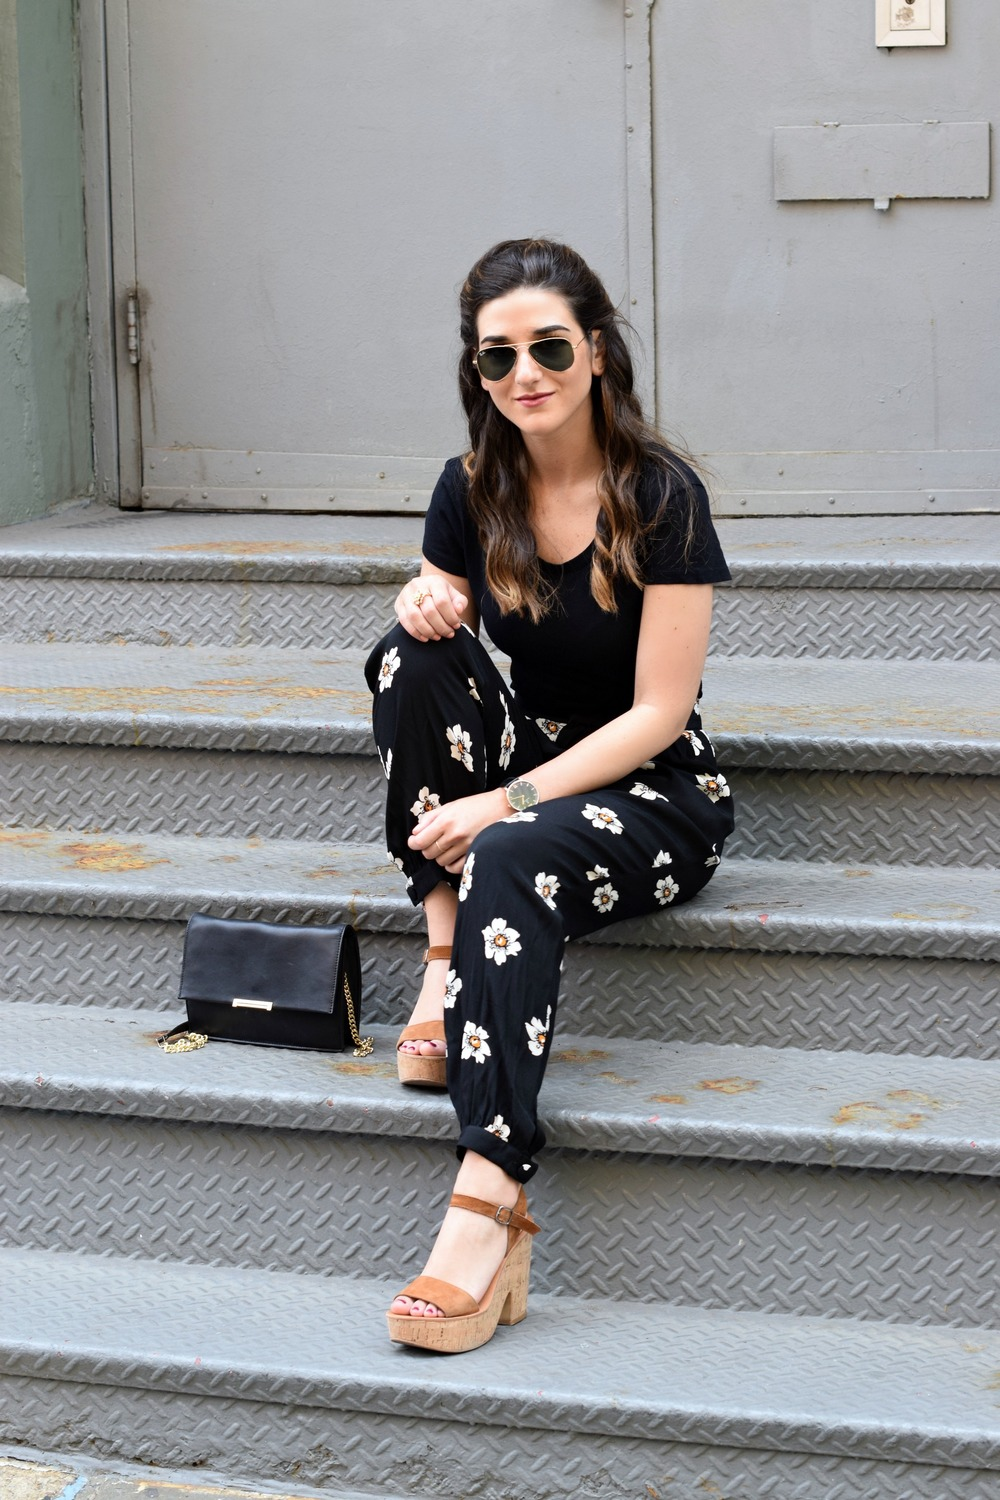 The Perfect Tee Onno T-Shirts Louboutins & Love Fashion Blog Esther Santer NYC Street Style Blogger Outfit OOTD Black Daisy Pants Zara Monochrome Basics Cork Wedges Dolce Vita Hair Inspo Watch Floral Purse Ivanka Trump Summer Spring Women Girls Shoes.jpg